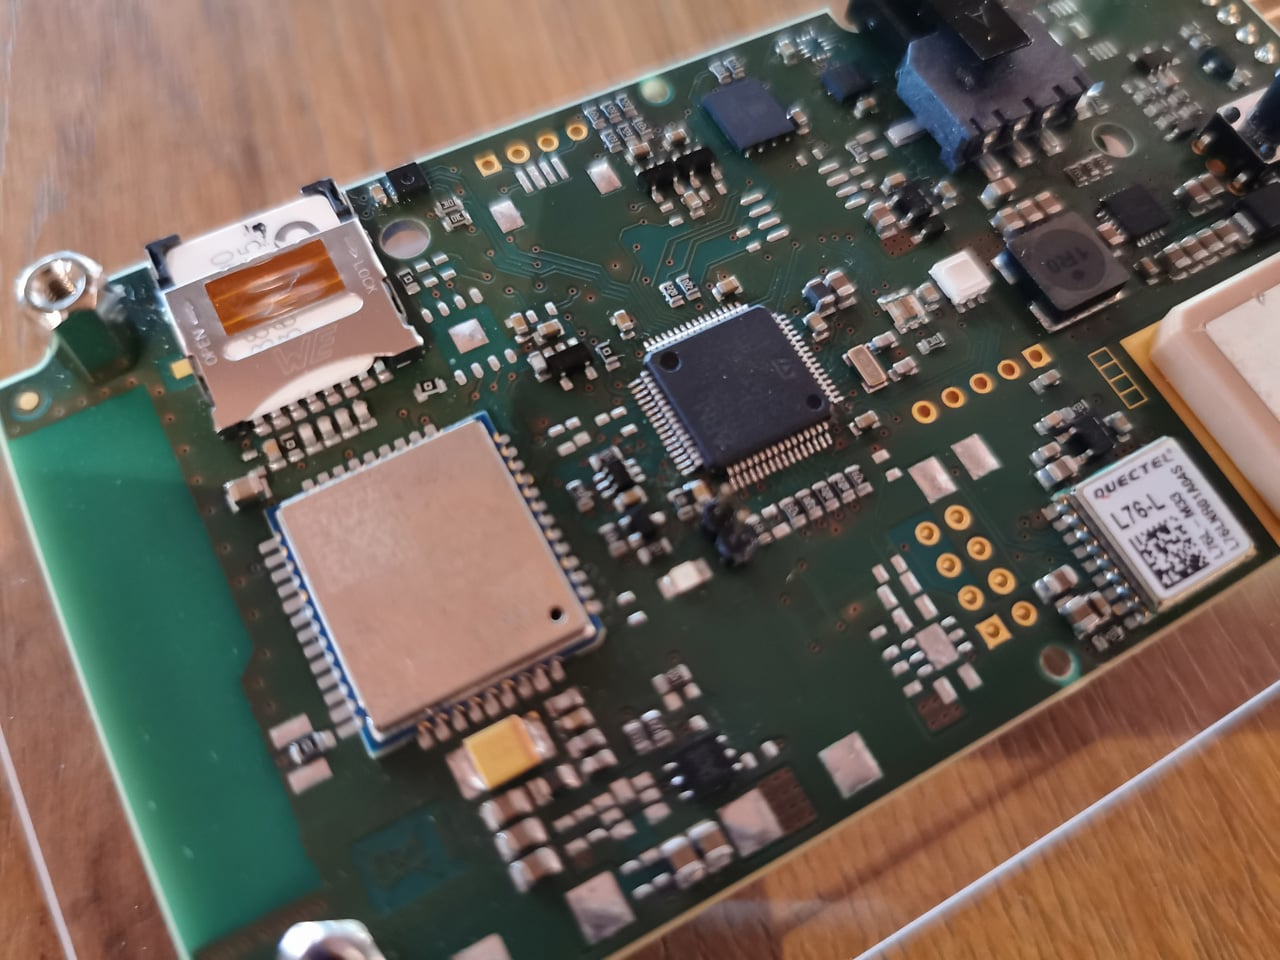 Prototypovací IoT modul od M2M Communication Holding (M2MC)